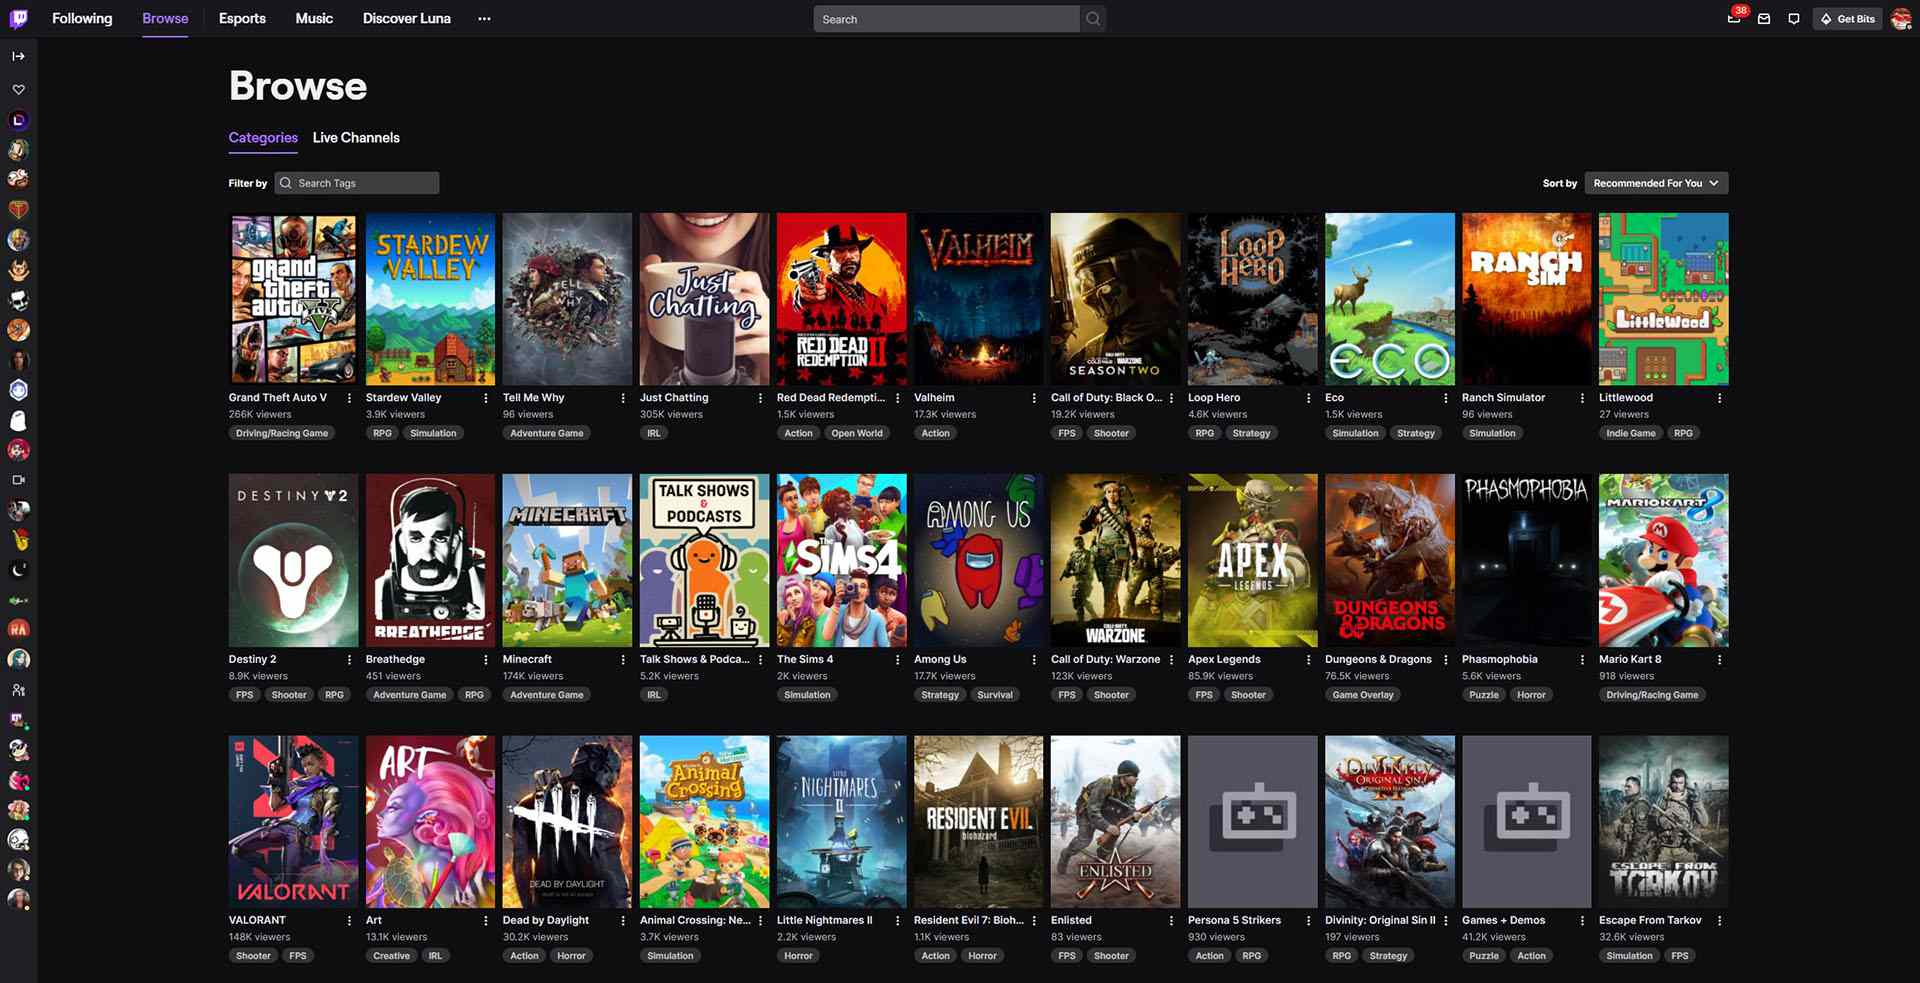 A screenshot of Twitch's browse page after logging in